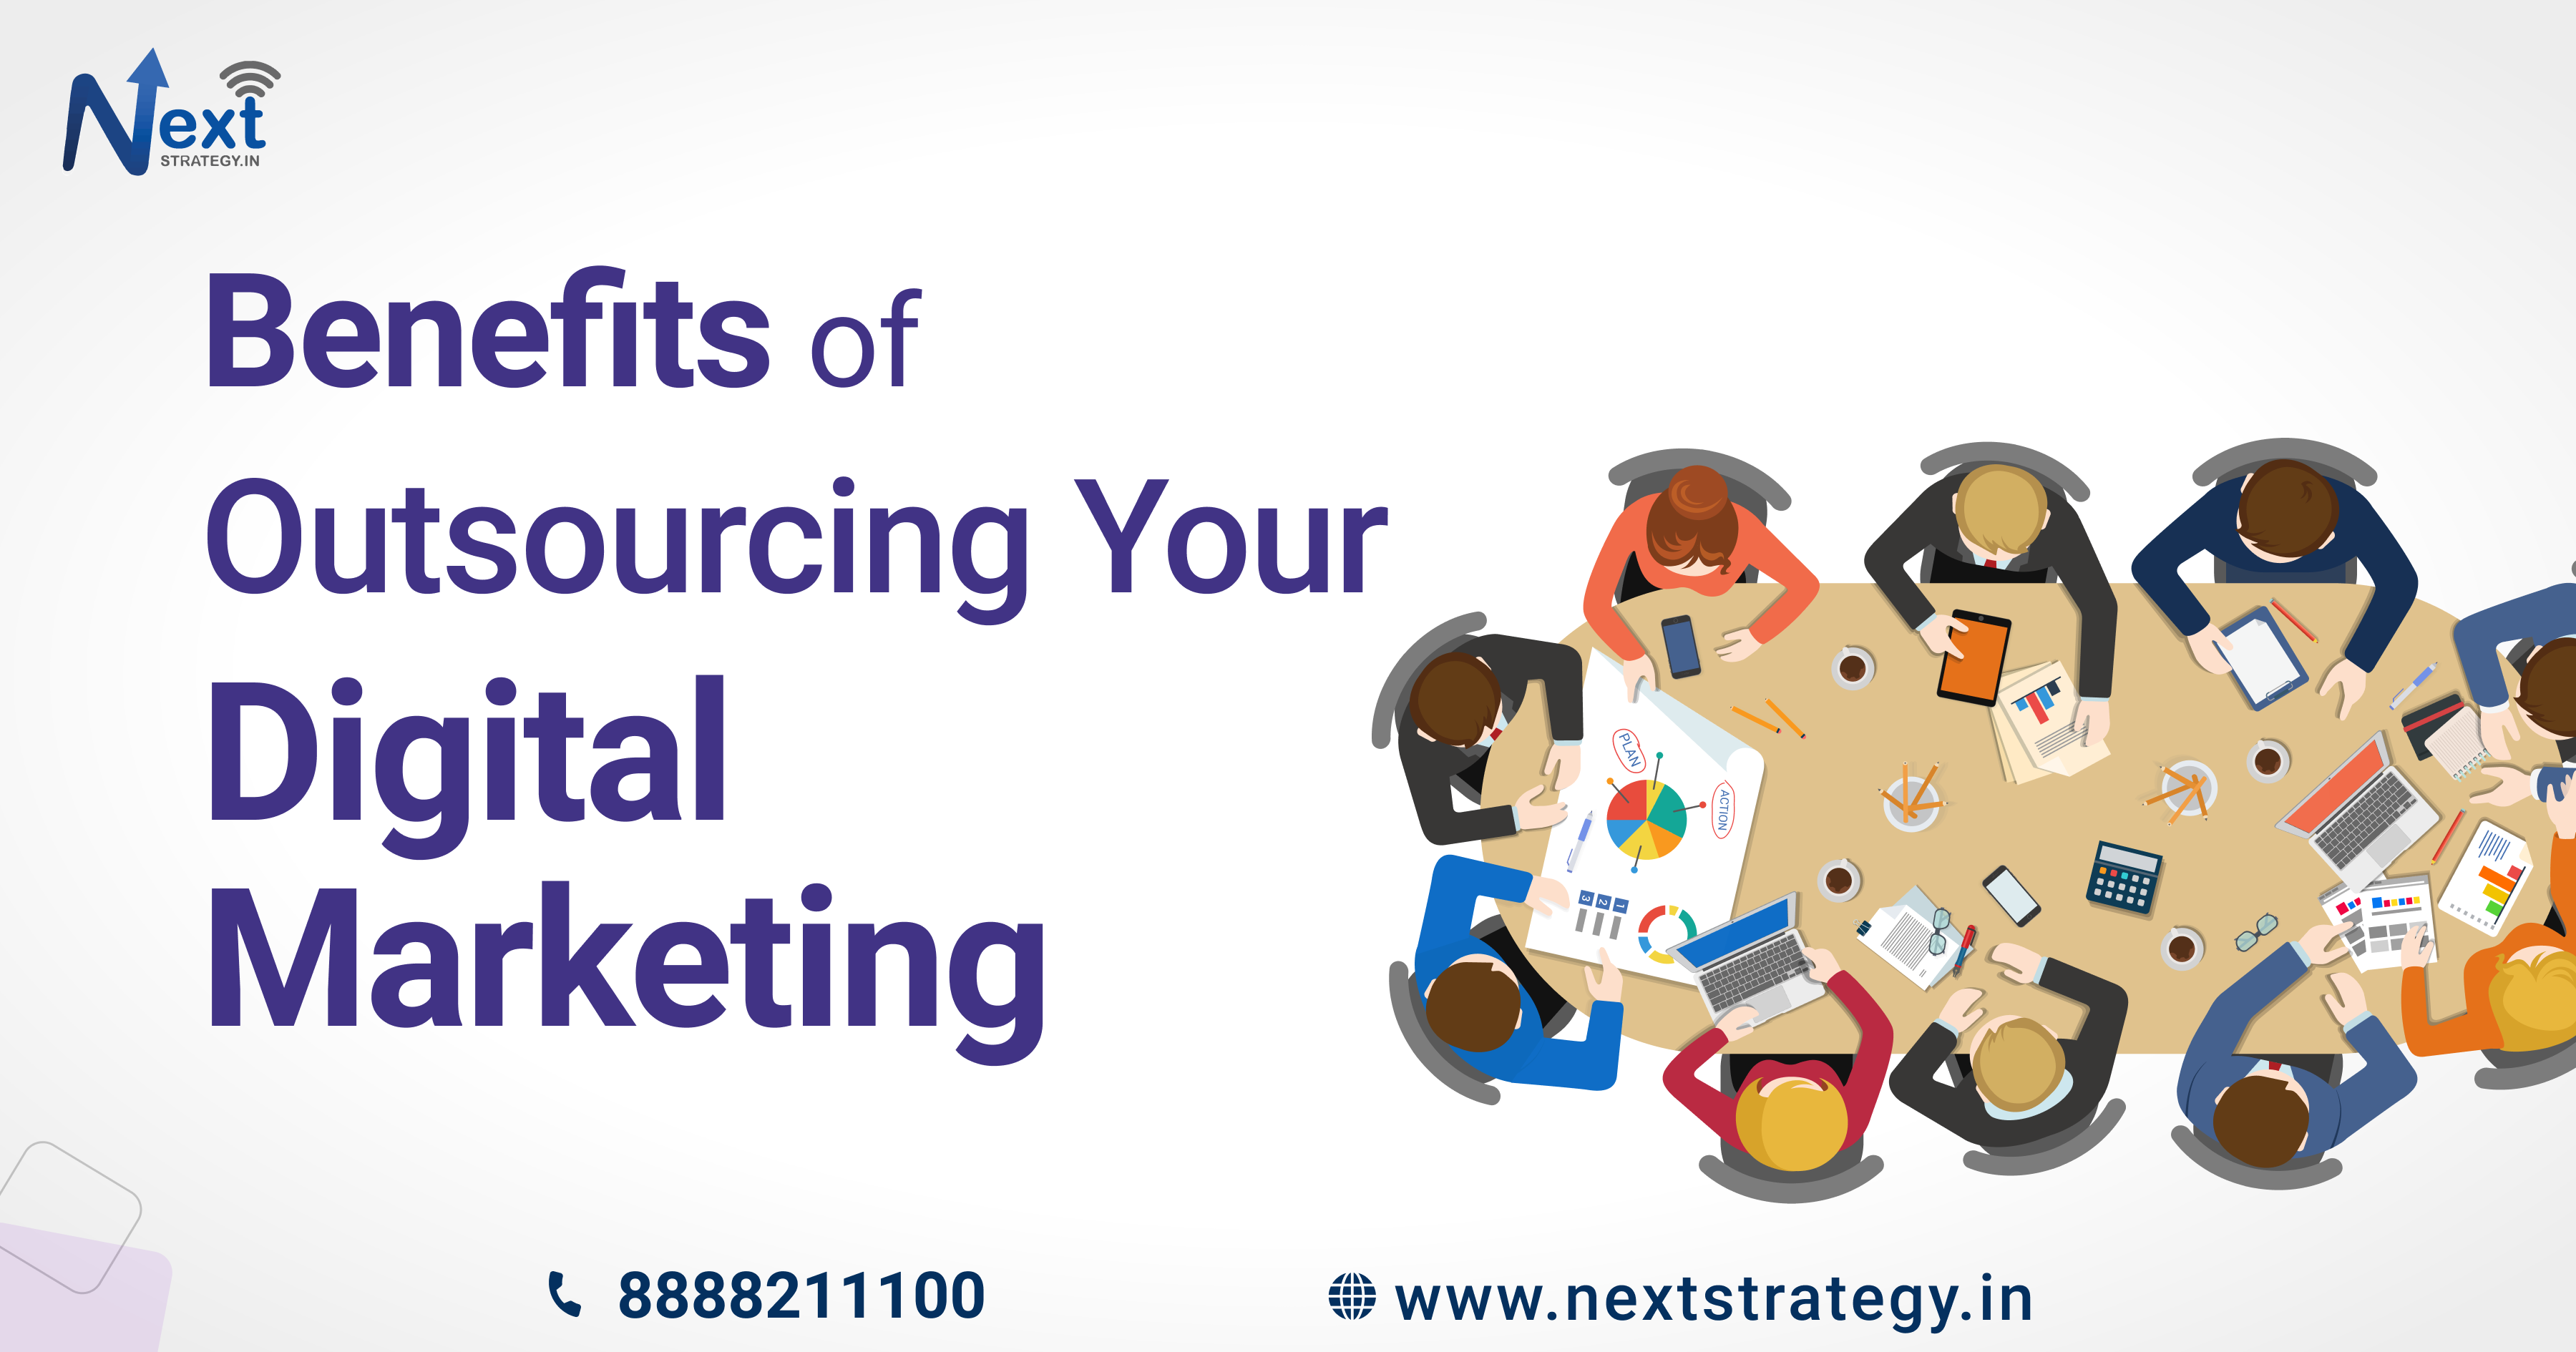 Benefits of Outsourcing digital marketing- Nextstrategy.in